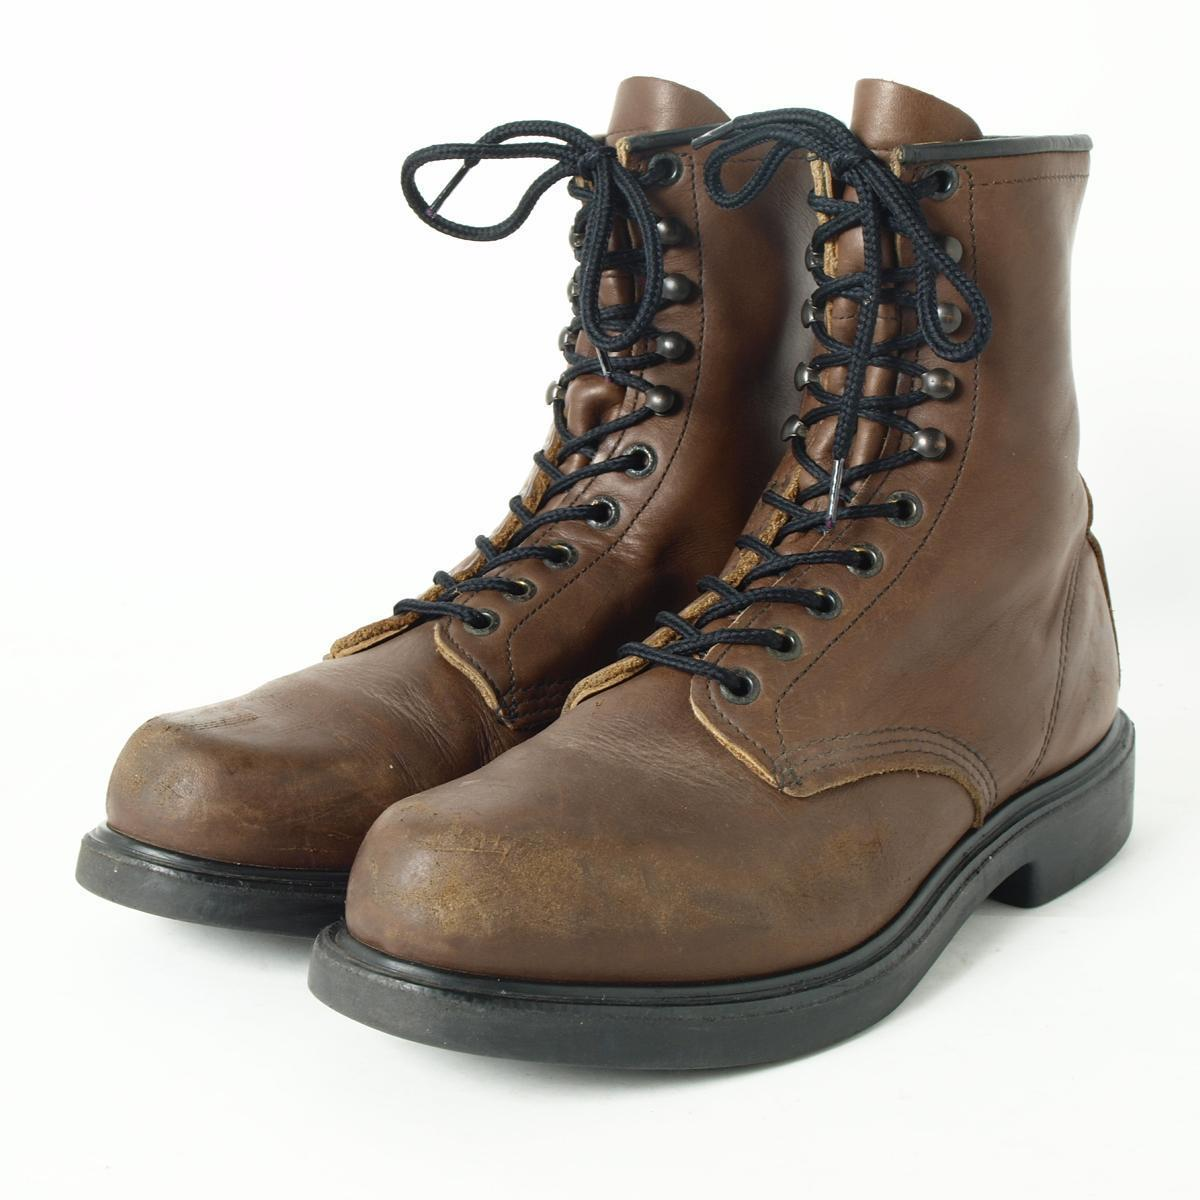 Red Wing Boots 953 - Boot Hto